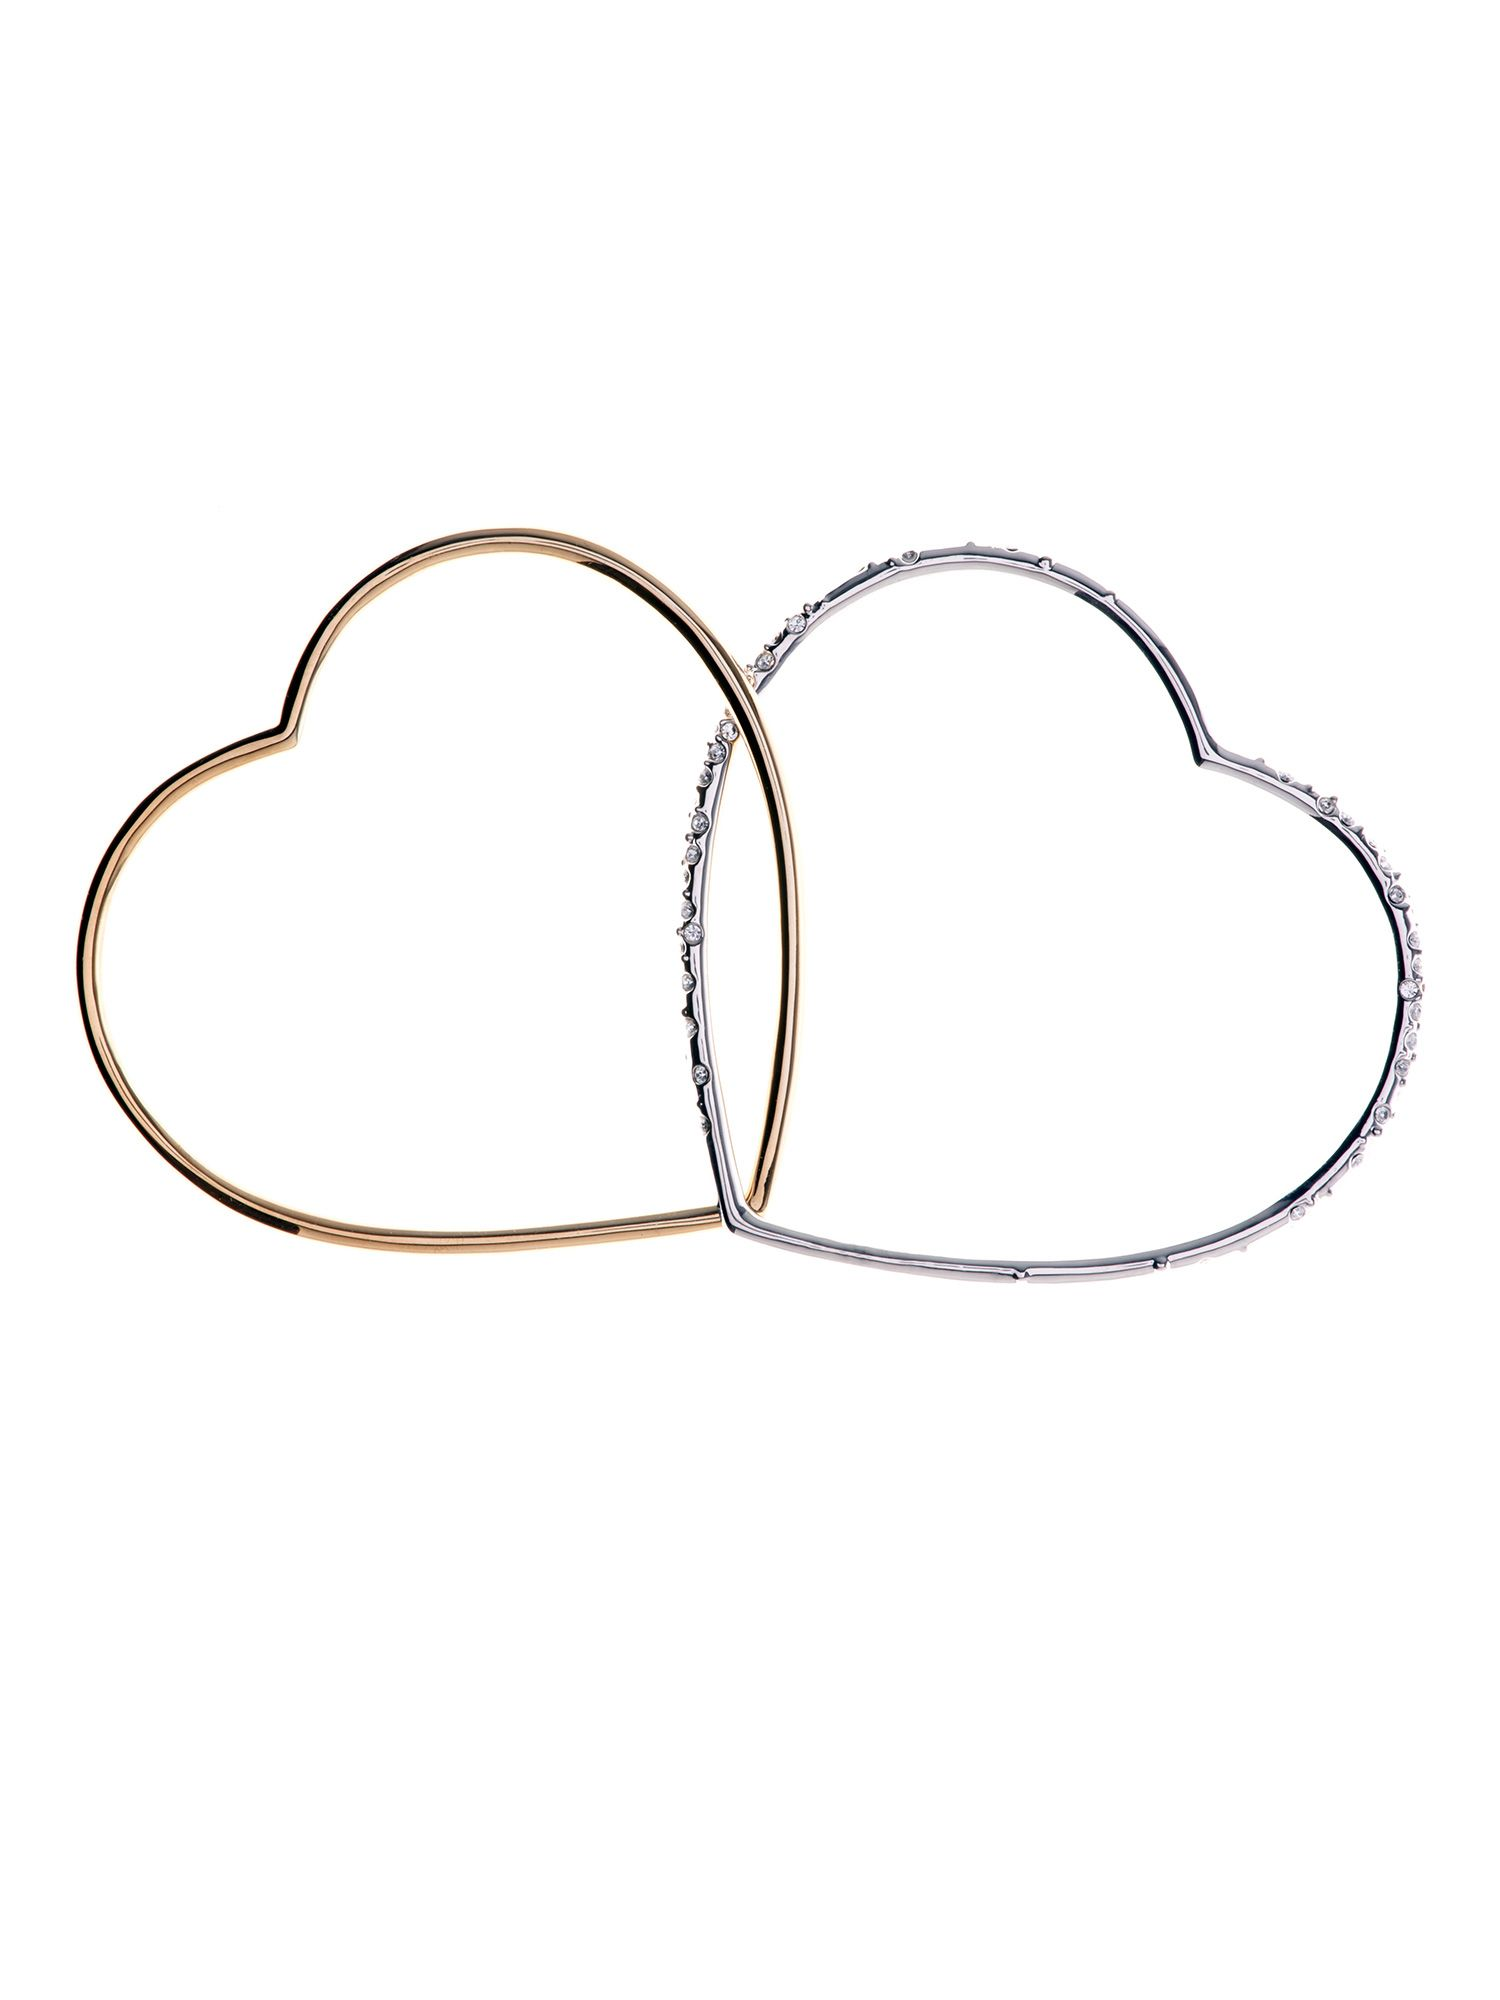 Linked heart bangles